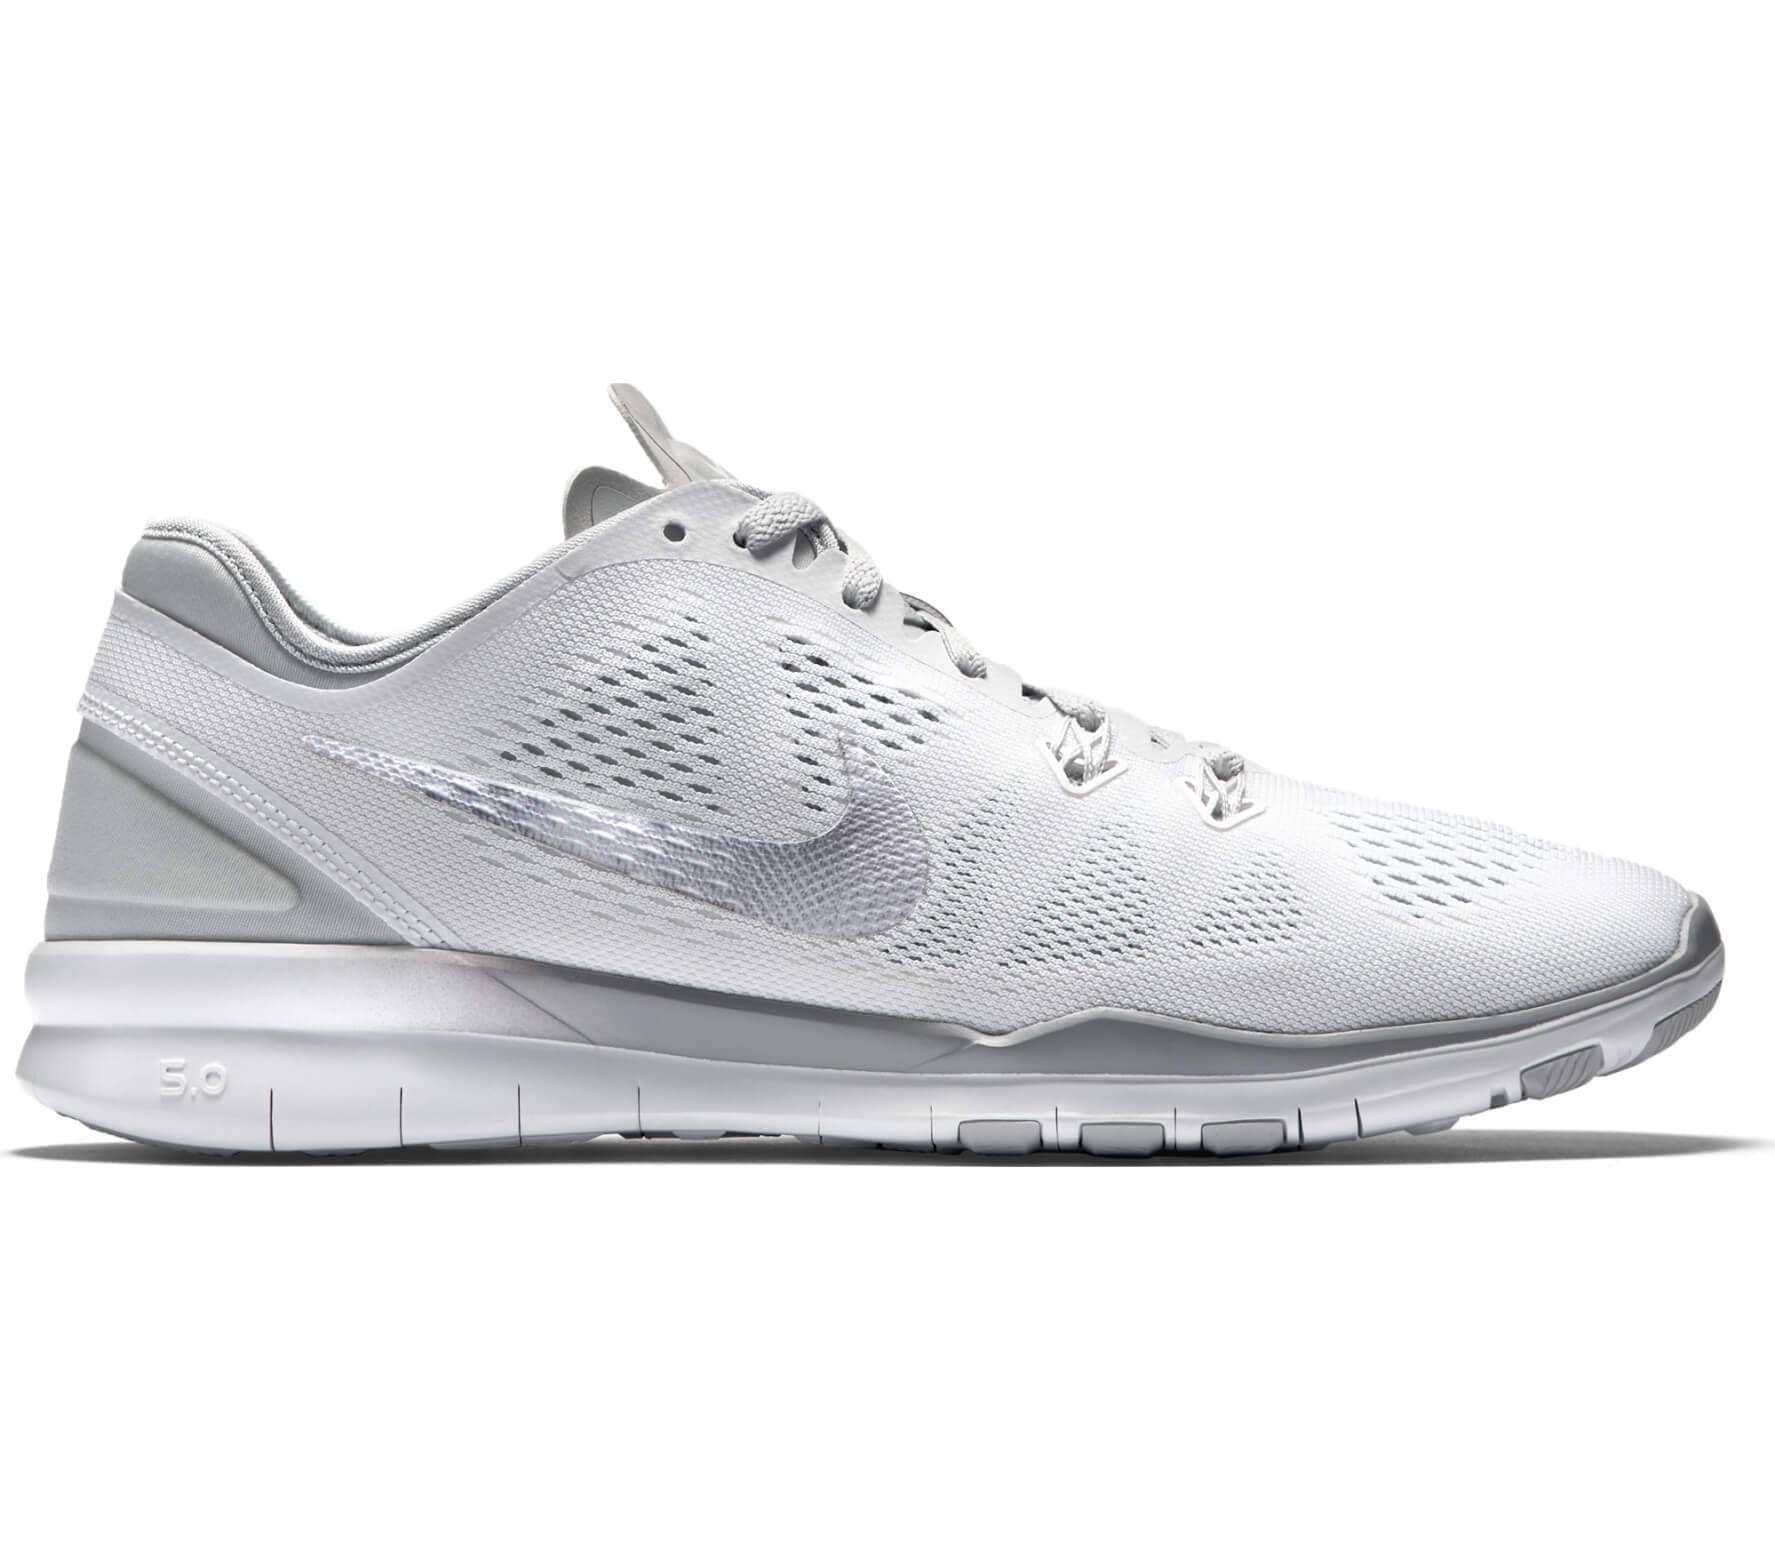 check out 037a6 d1411 ... wholesale nike free 5.0 tr fit 5 dam utbildning sko vit silver f8c88  590f9